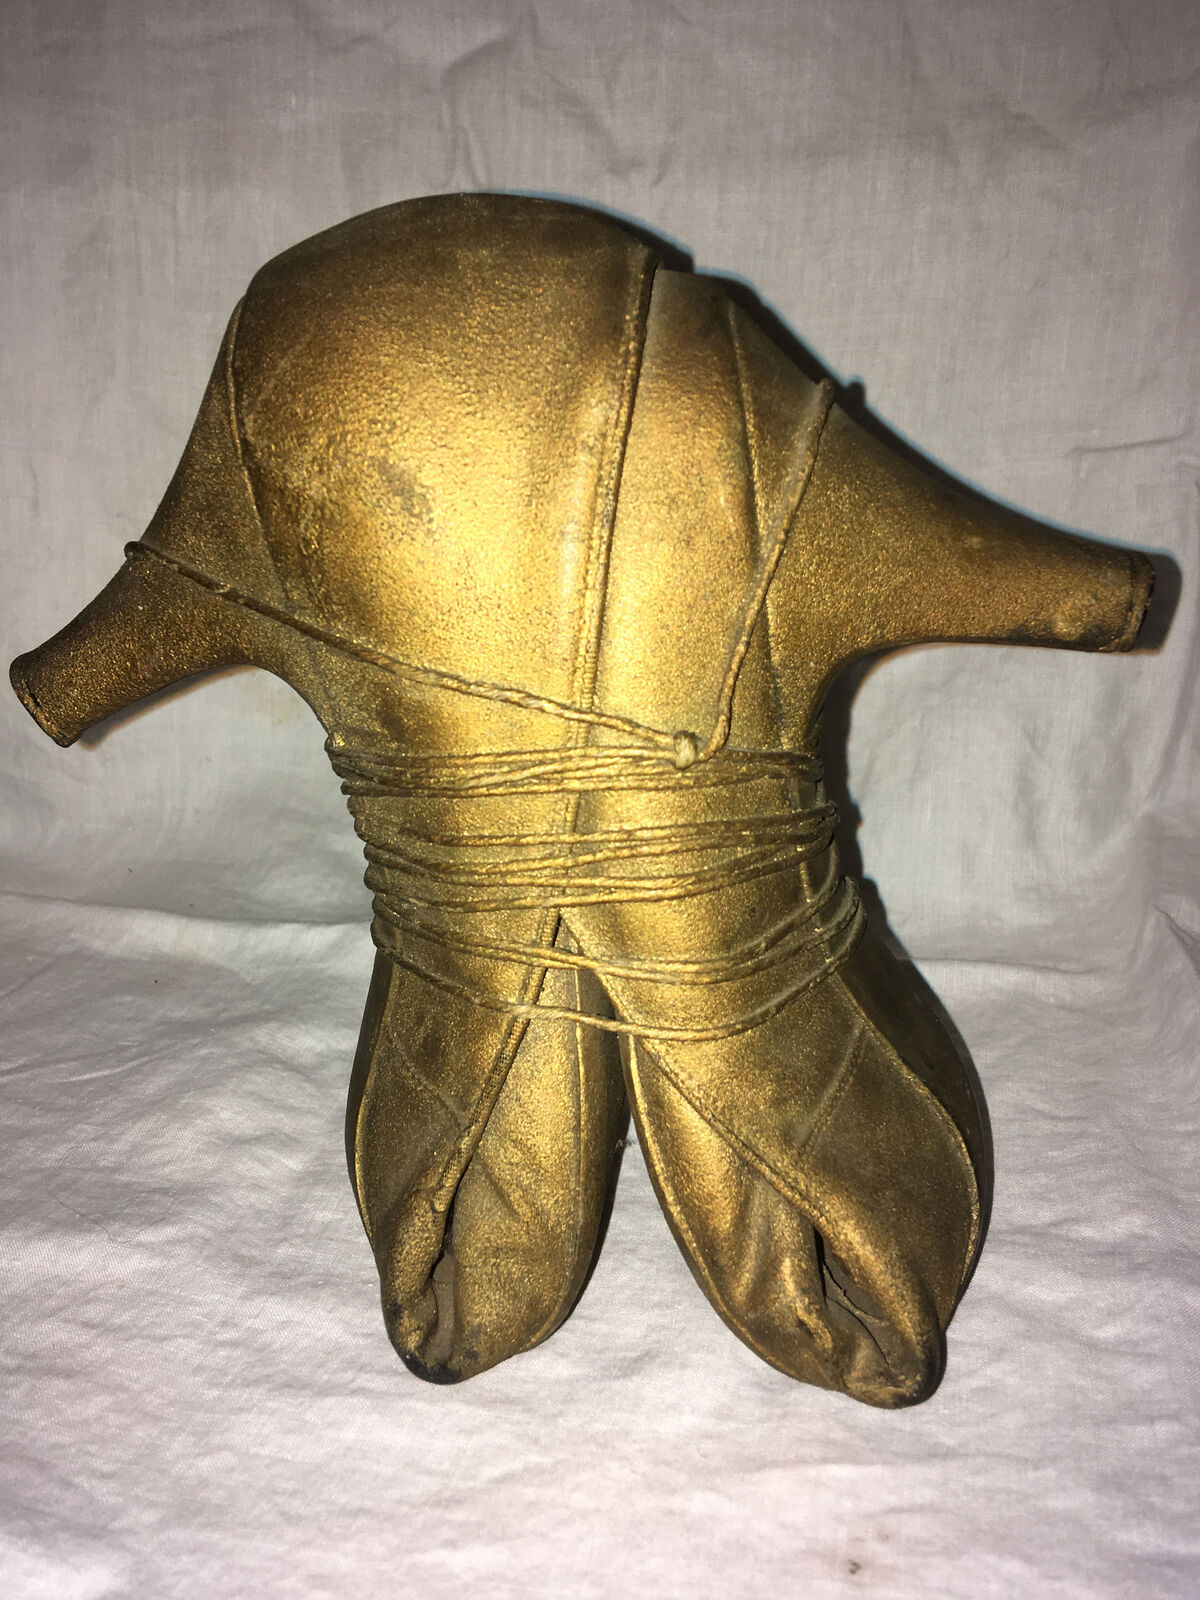 An untitled sculpture by May Wilson that Ray Johnson gifted to the author.